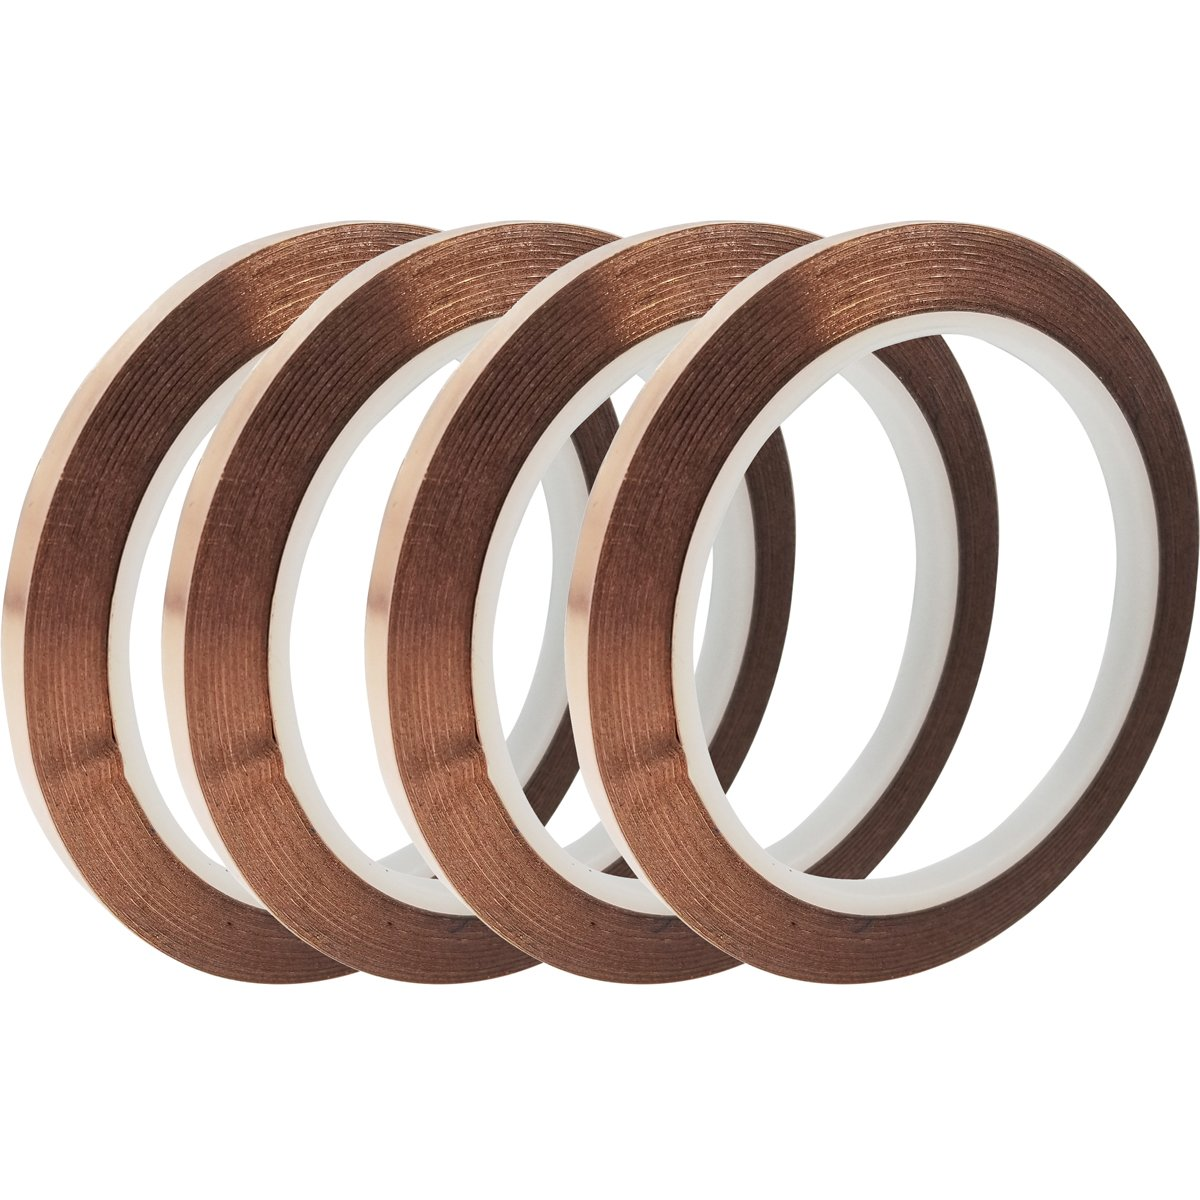 4 Rolls Strong Copper Foil Tape Double Sides EMI Shielding Conductive Adhesive Tape for Paper Circuits, Electrical Repairs, Grounding 1/4inch X 21.8yards SINYUM 4336904902